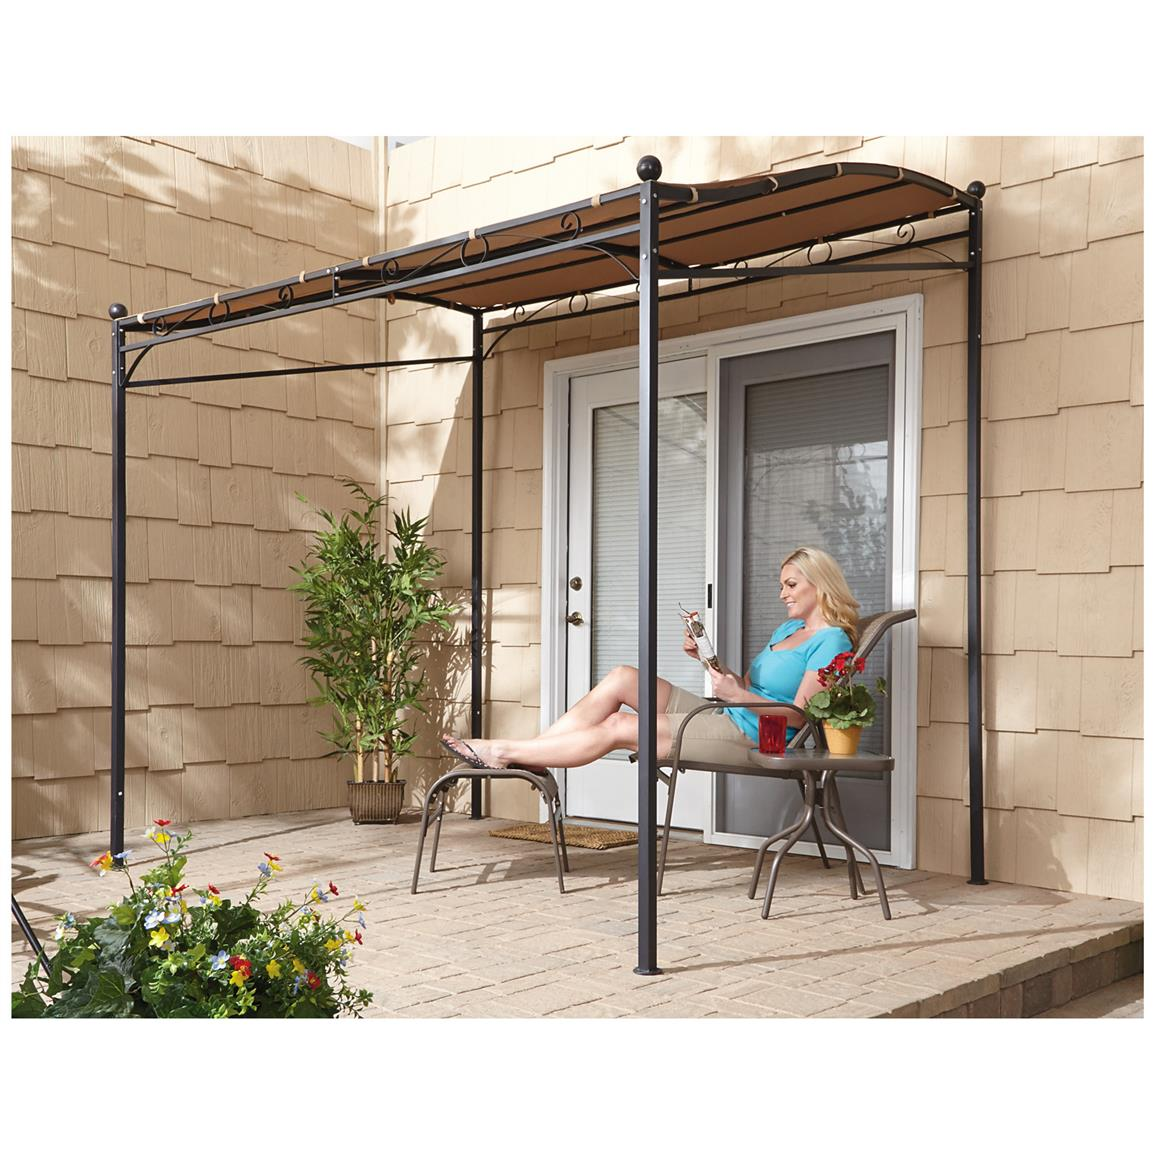 small gazebo sturdy free-standing support ROQCDHO